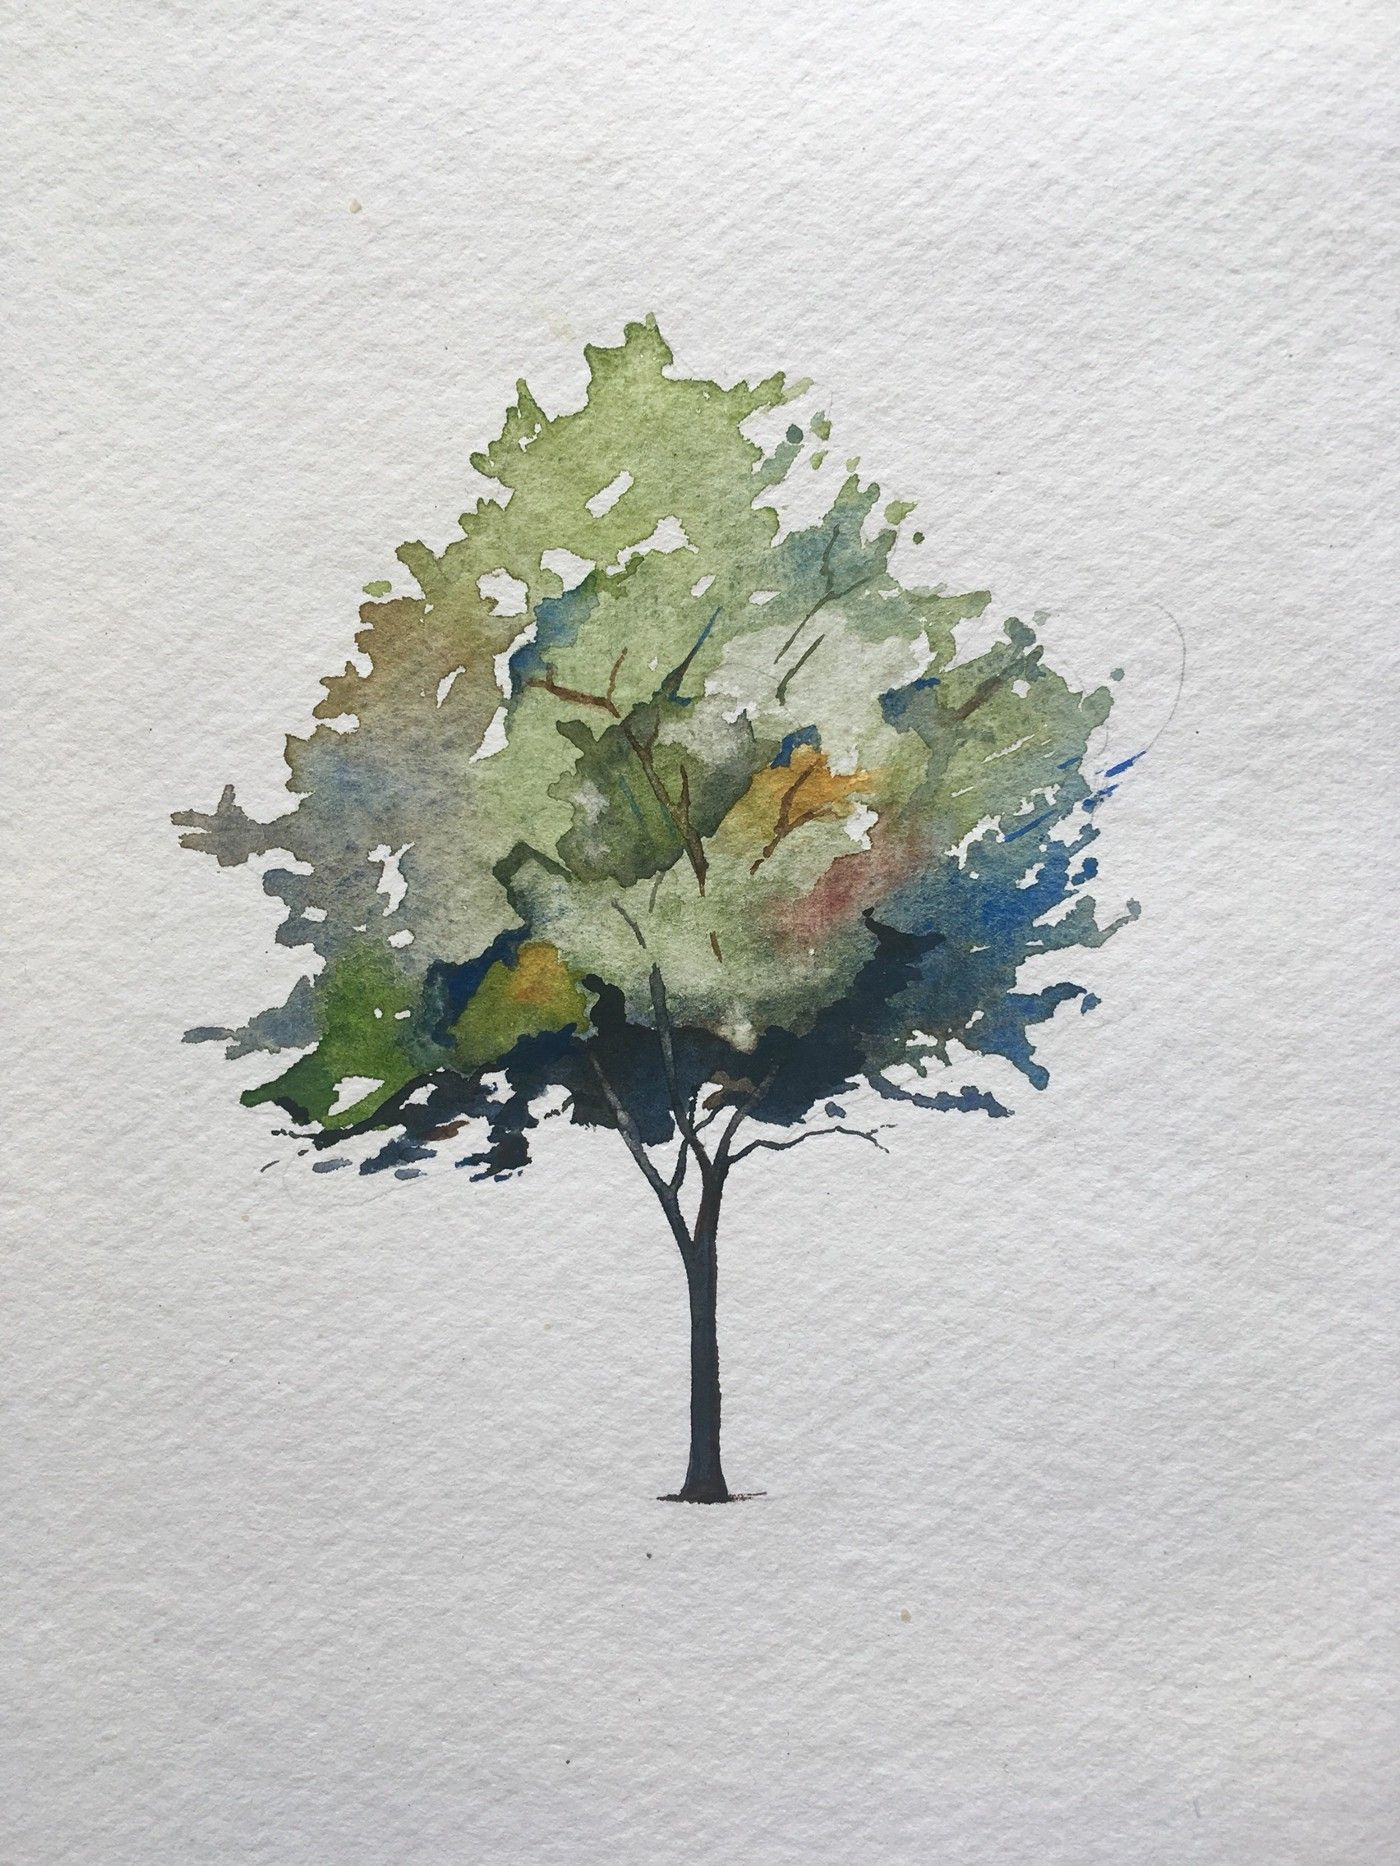 How To Paint A Tree In Watercolors - The Startup - Medium